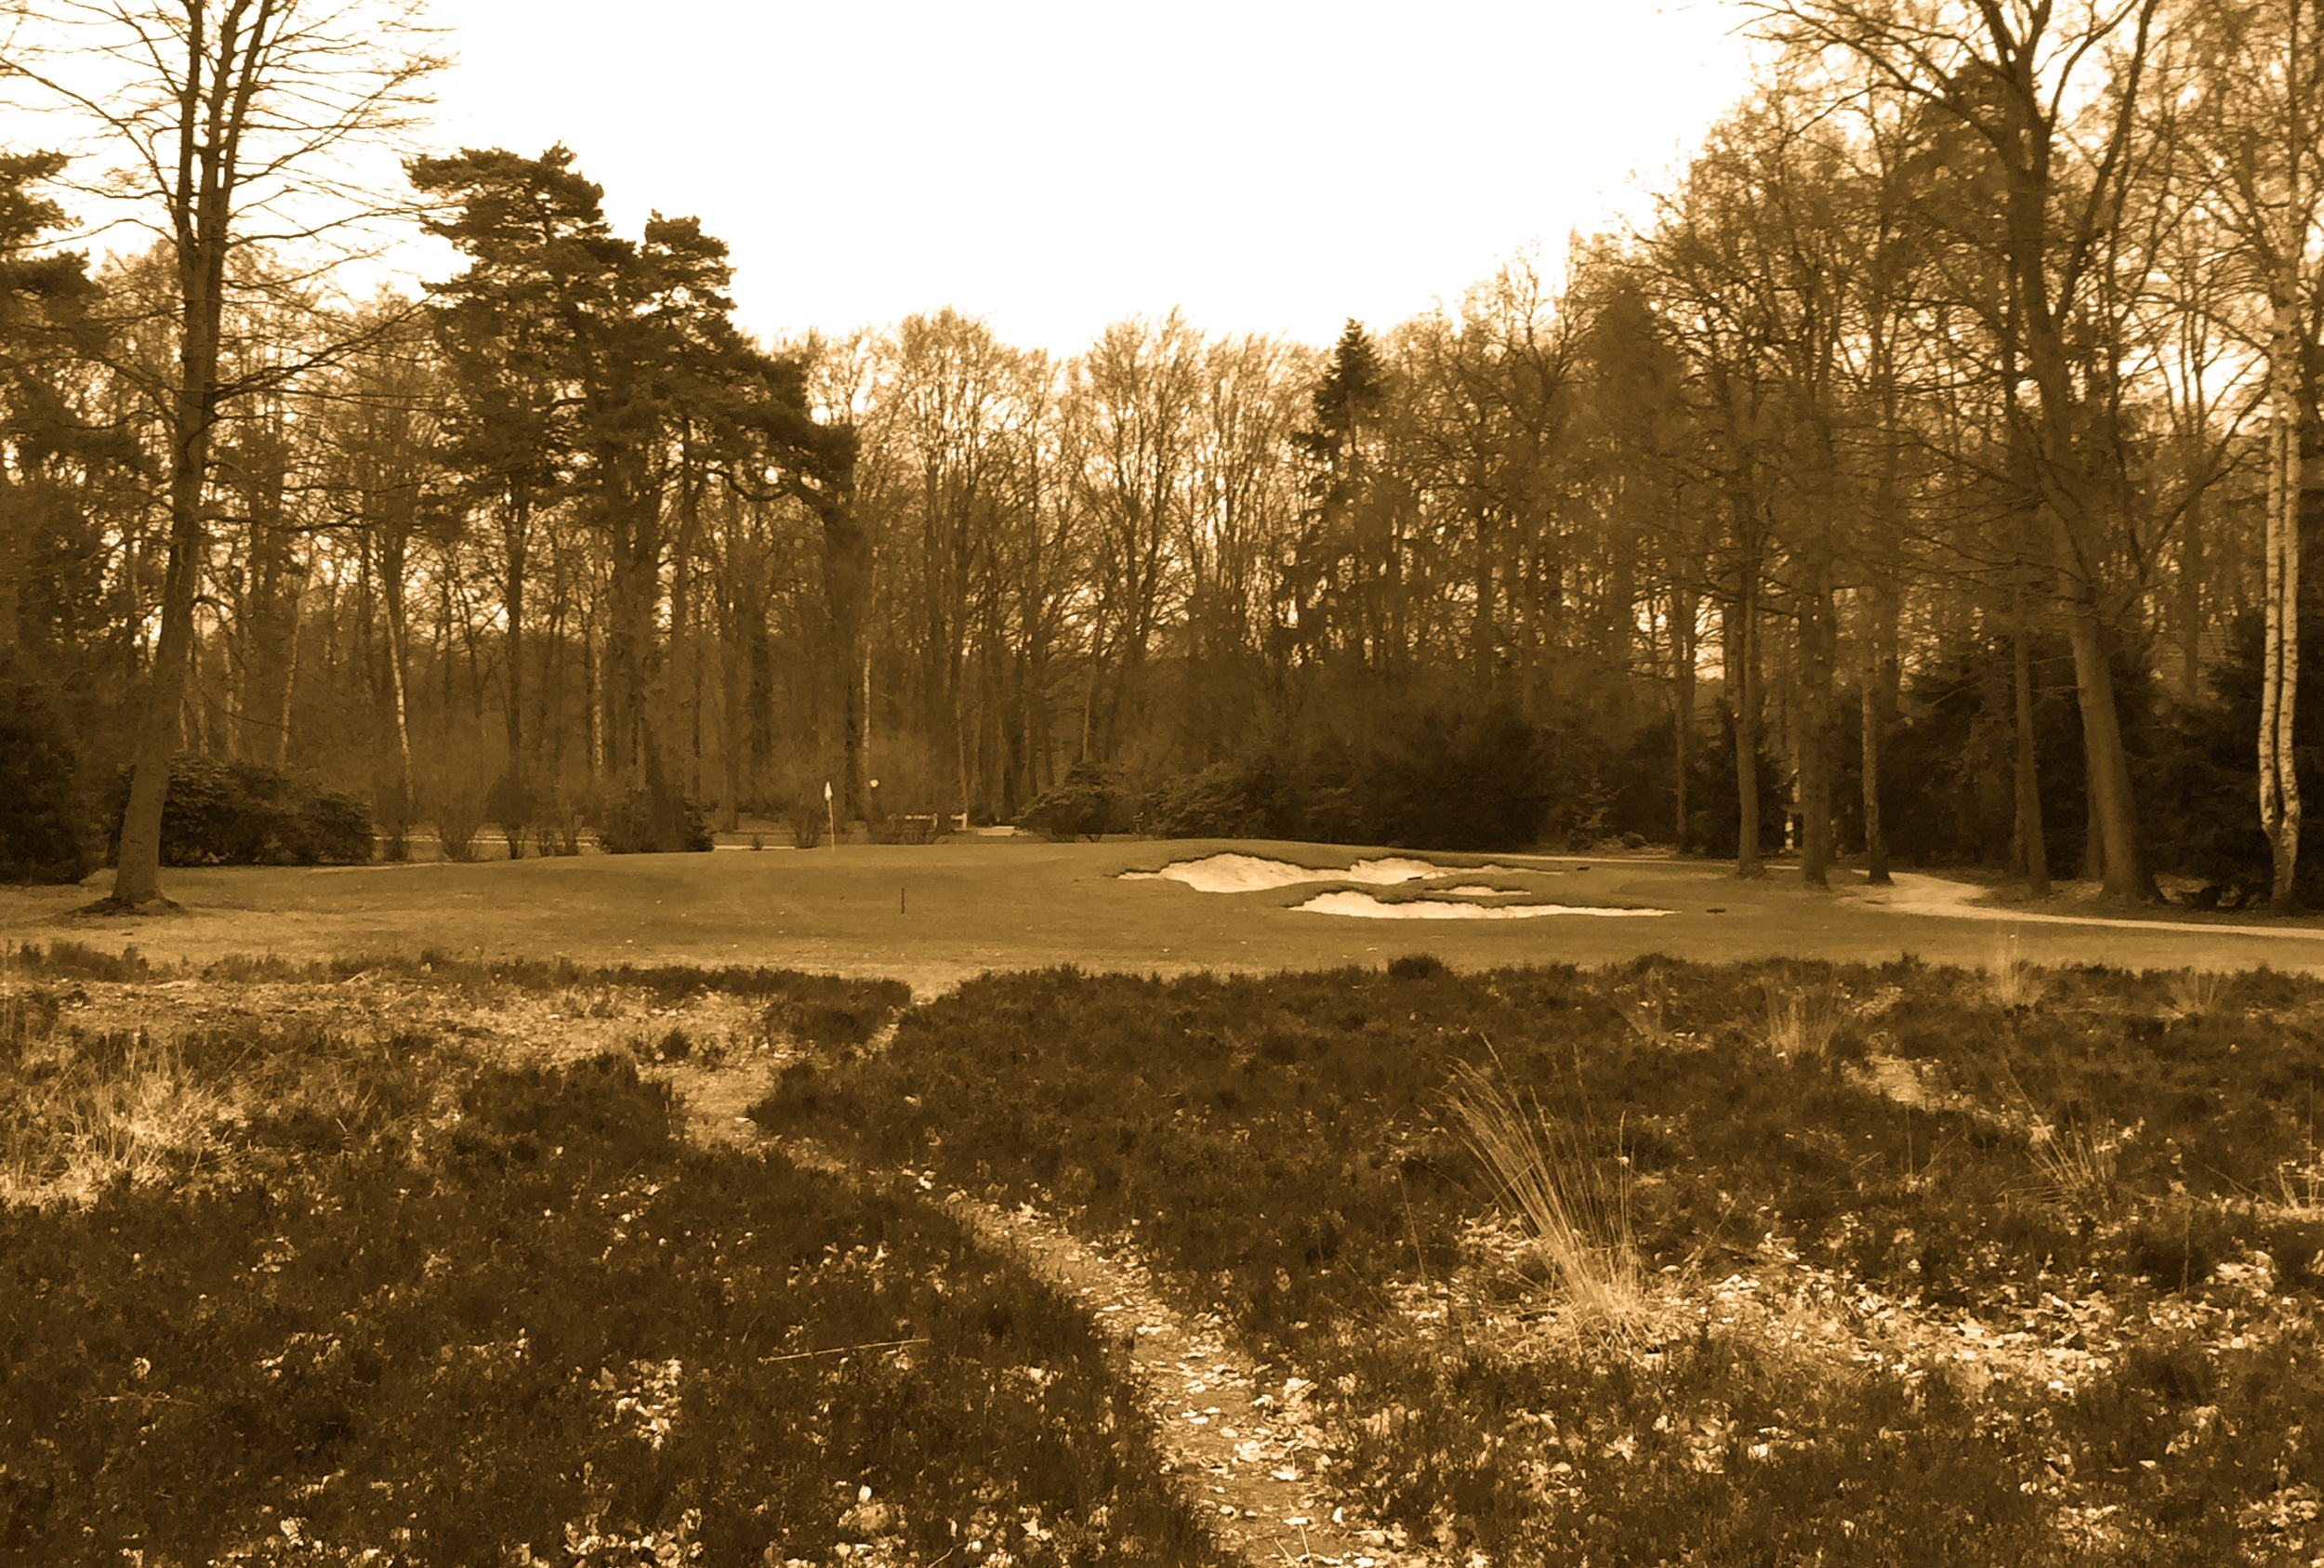 Hole 9 after image with antique filter for effect.  Also like the 2nd hole, a cape was used to give the illusion of three bunkers when there is only one.